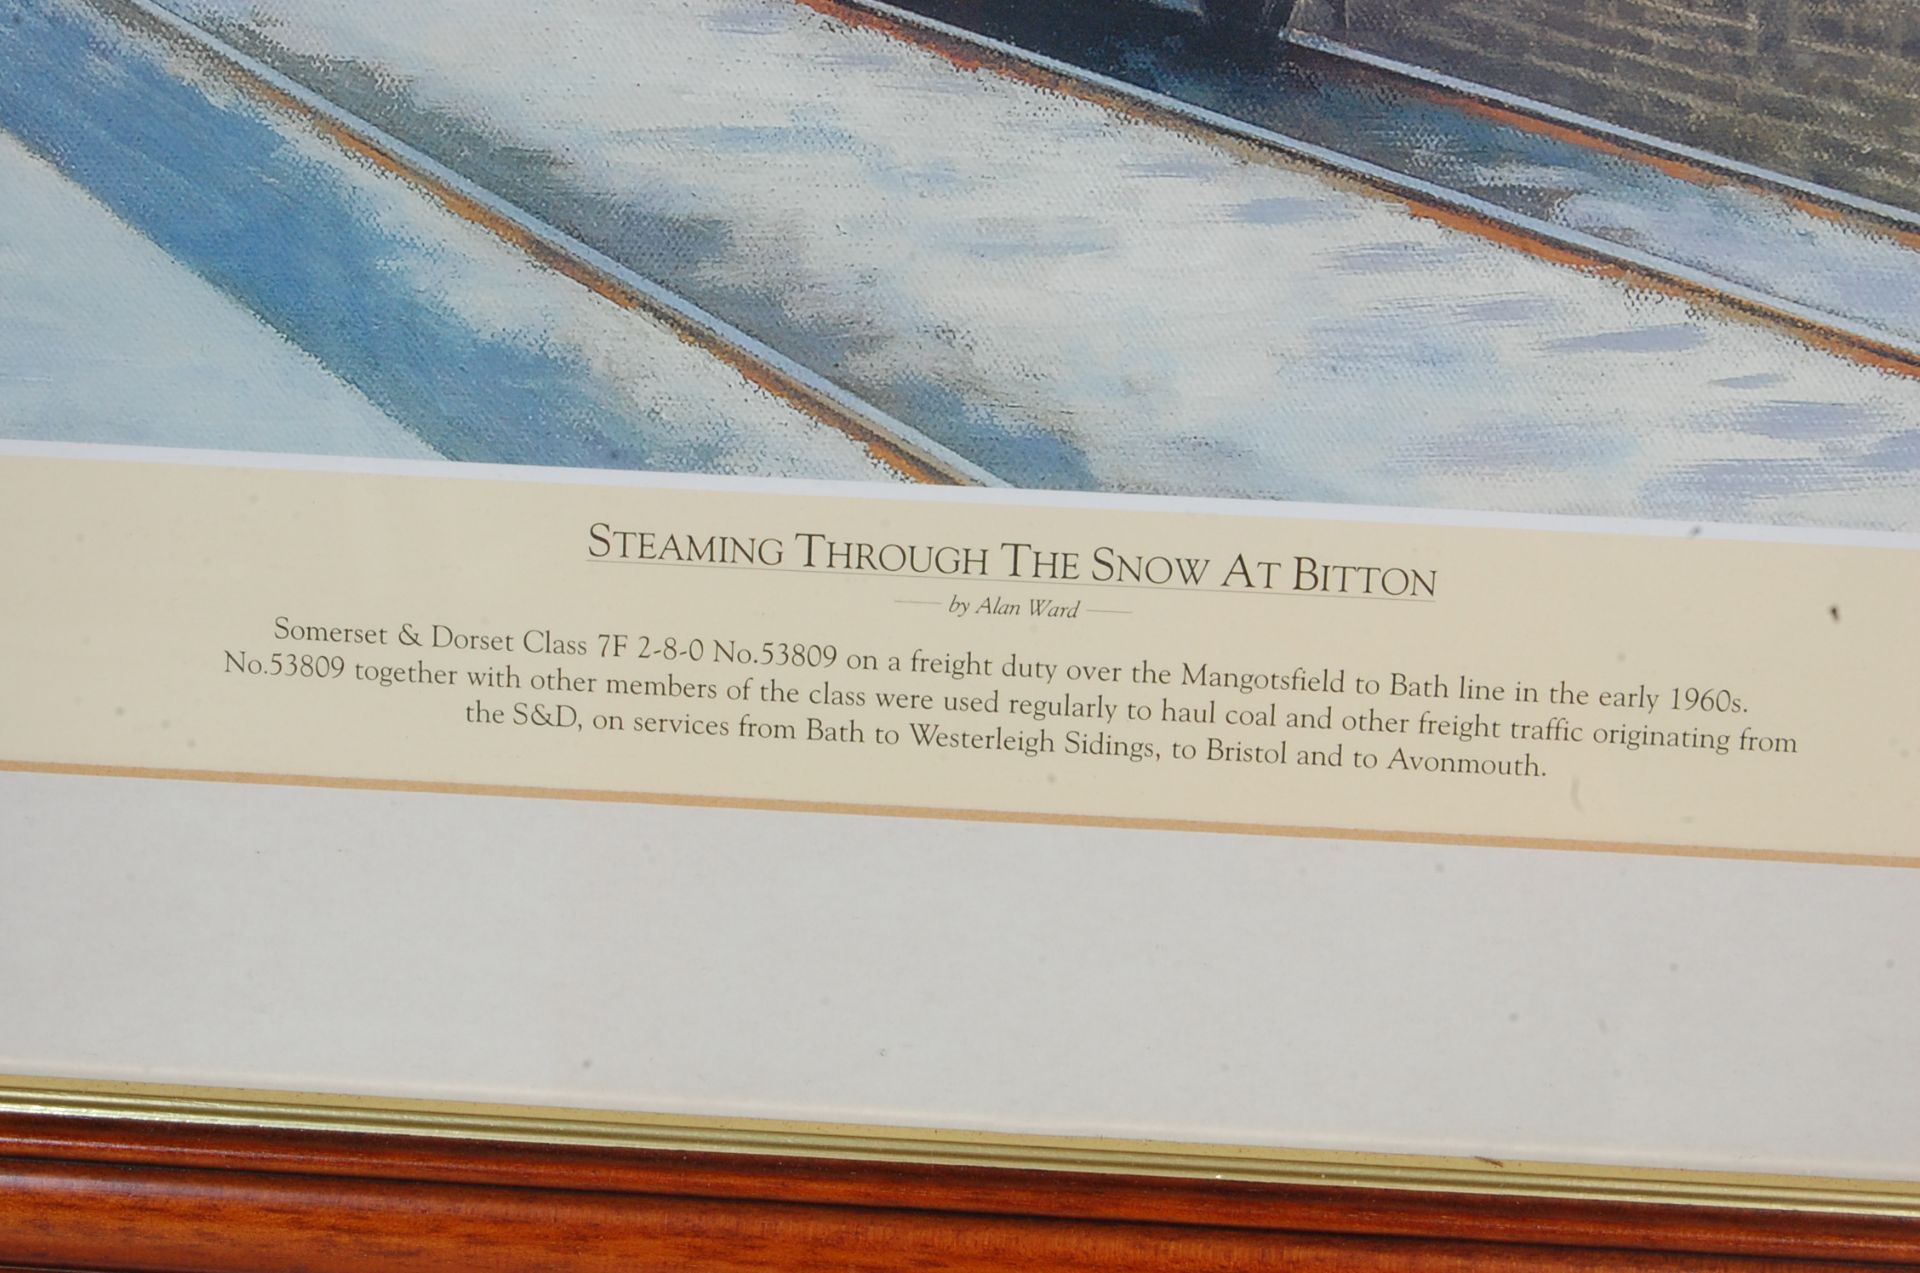 RAILWAY INTEREST - STEAMING THROUGH THE SNOW AT BITTON - LTD ED PRINT - Bild 6 aus 9